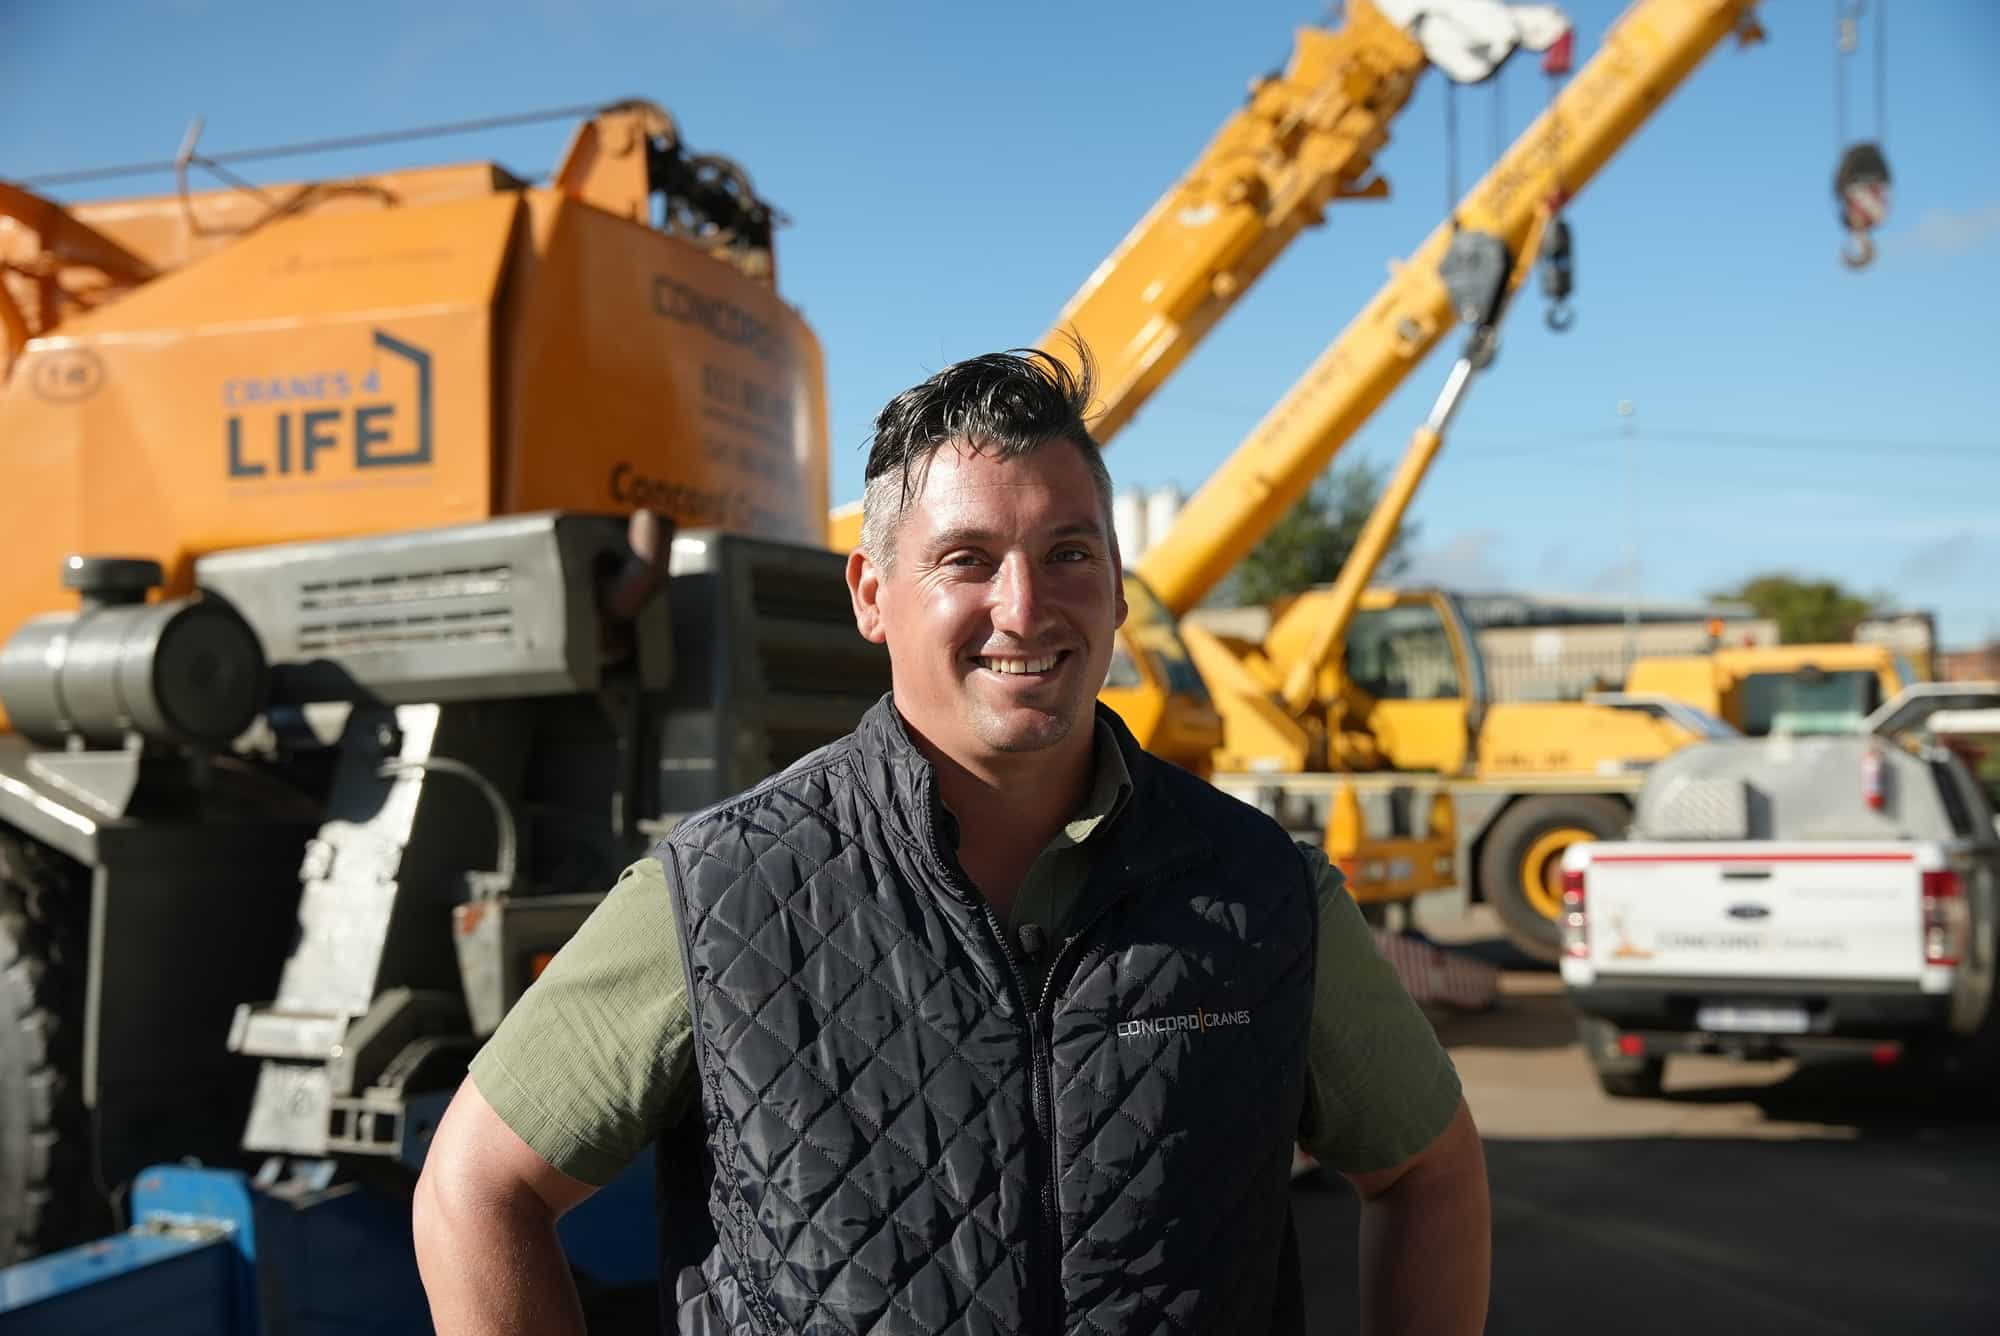 A picture of the operations manager of Concord Cranes, Gareth Langley, with their construction fleet in the background.